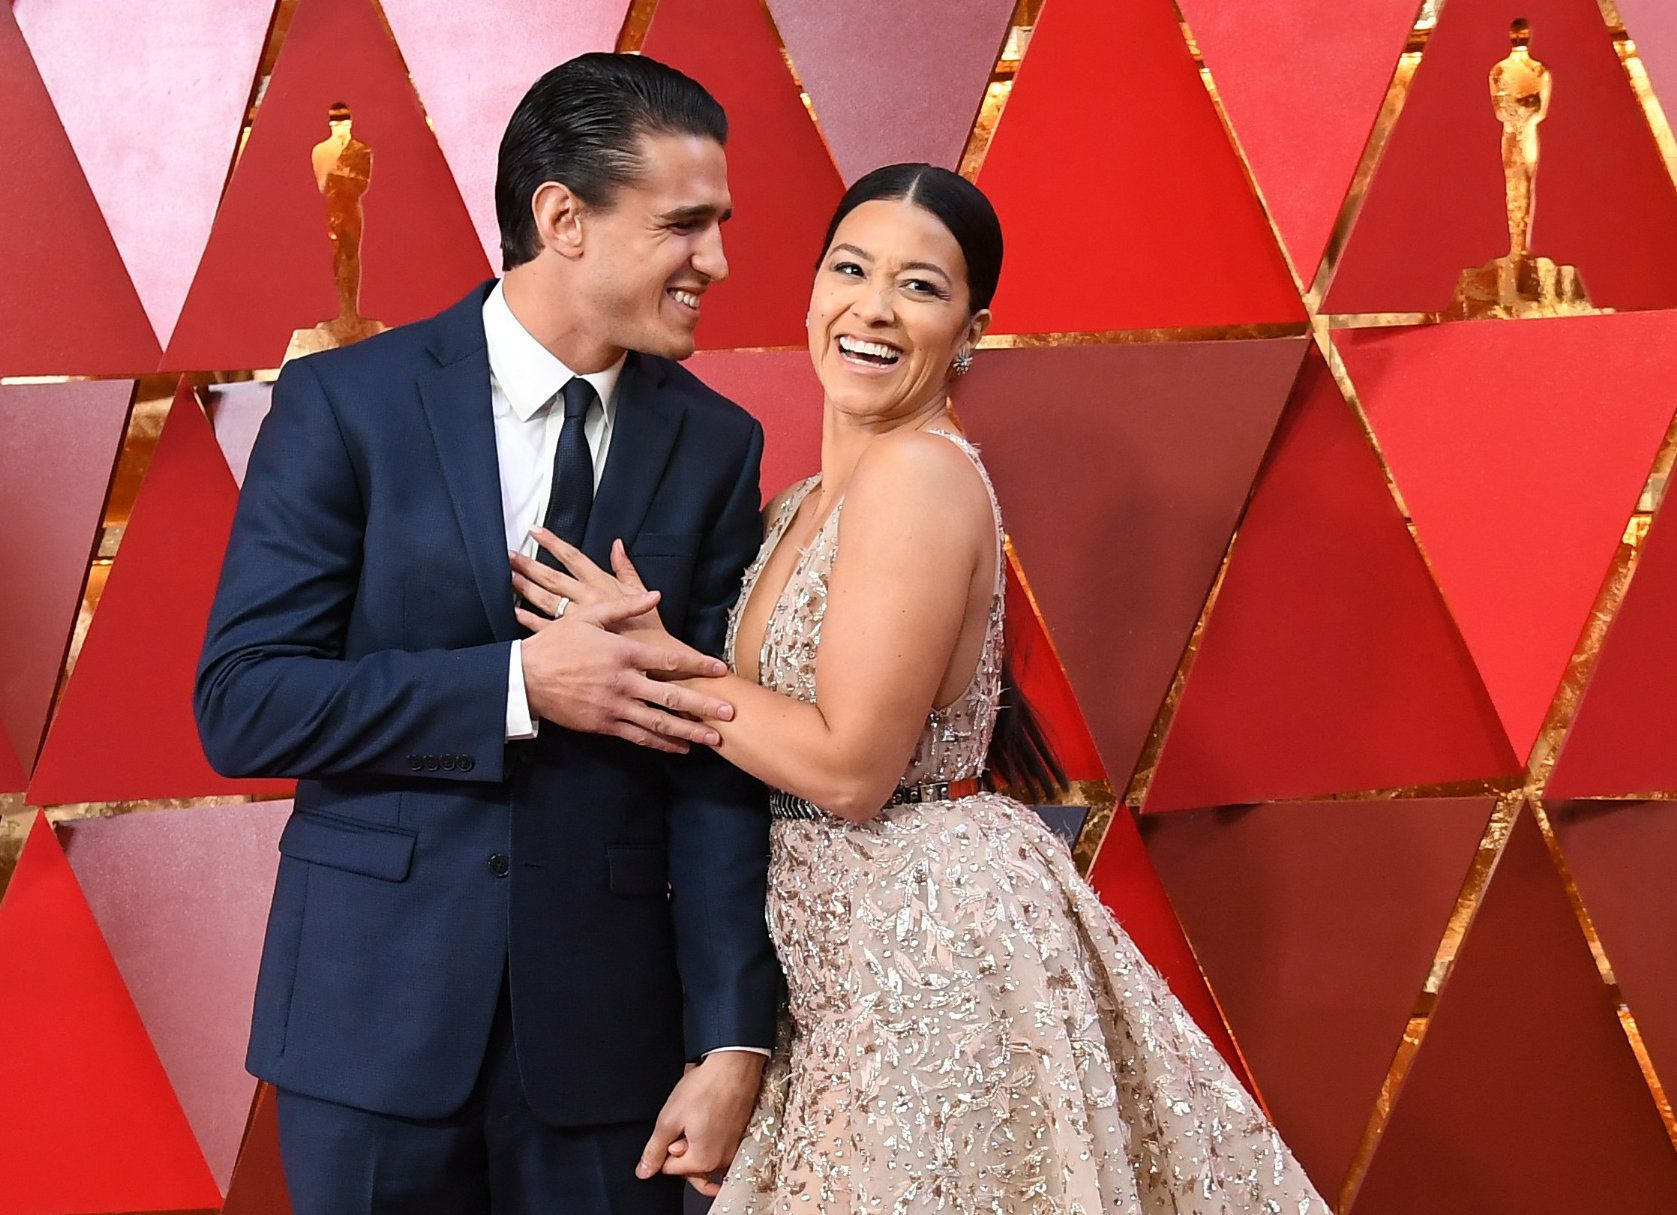 US actress Gina Rodriguez (R) and her partner Joe Locicero arrive for the 90th Annual Academy Awards on March 4, 2018, in Hollywood, California.  / AFP PHOTO / ANGELA WEISS        (Photo credit should read ANGELA WEISS/AFP/Getty Images)